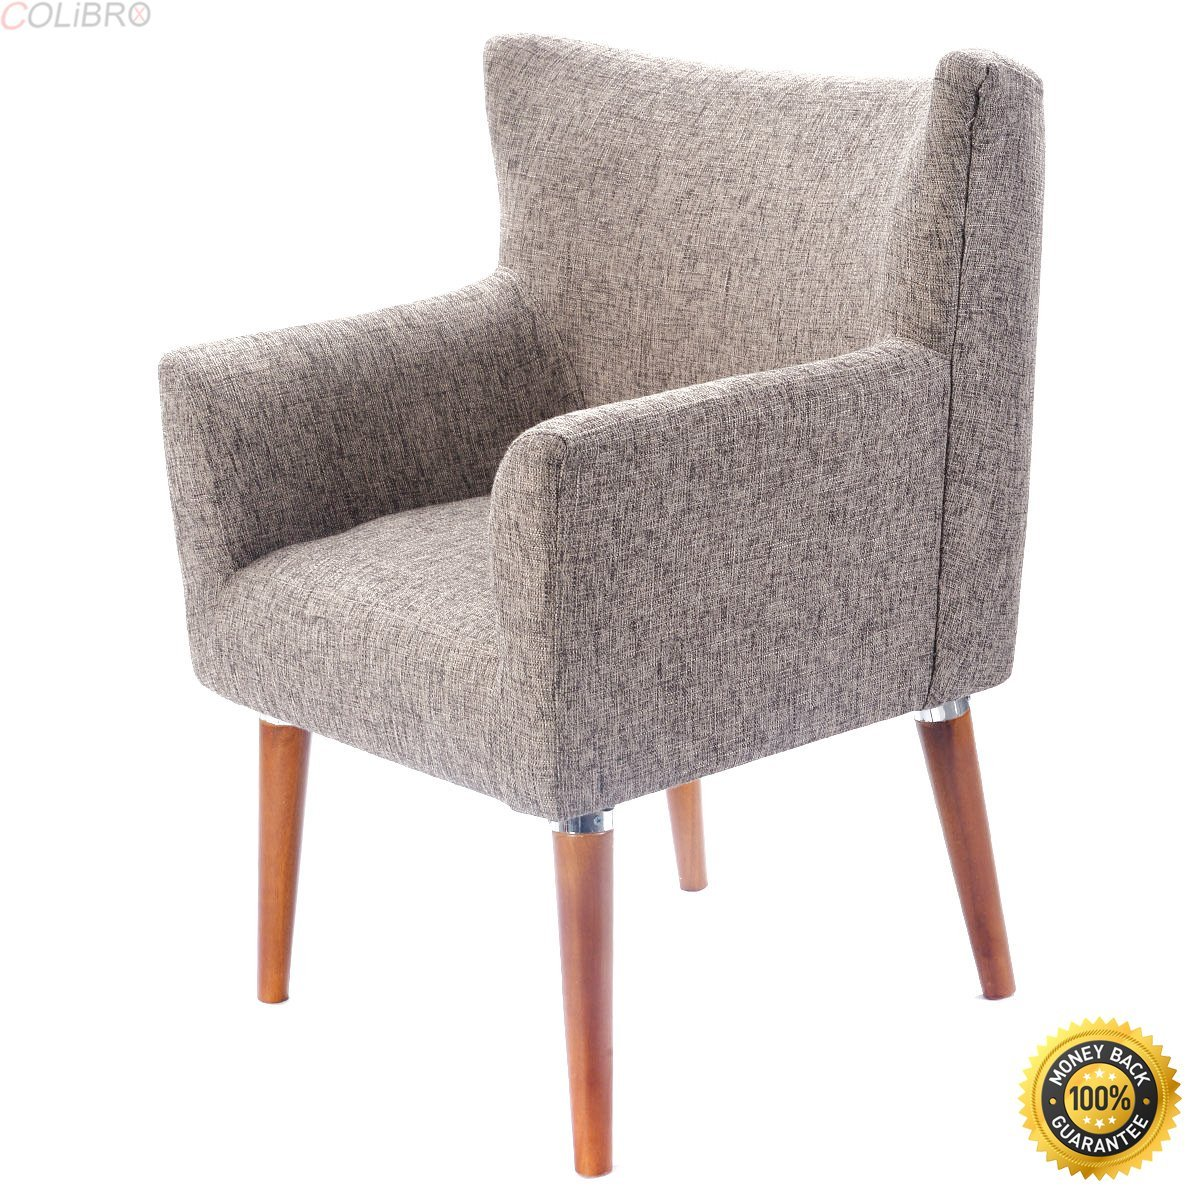 COLIBROX--New Leisure Arm Chair Single Couch Seat Home Garden Living Room Furniture Sofa,armchair cheap,Soft Modern Arm Chair,cheap living room chairs,living room chair,chairs for sale cheap